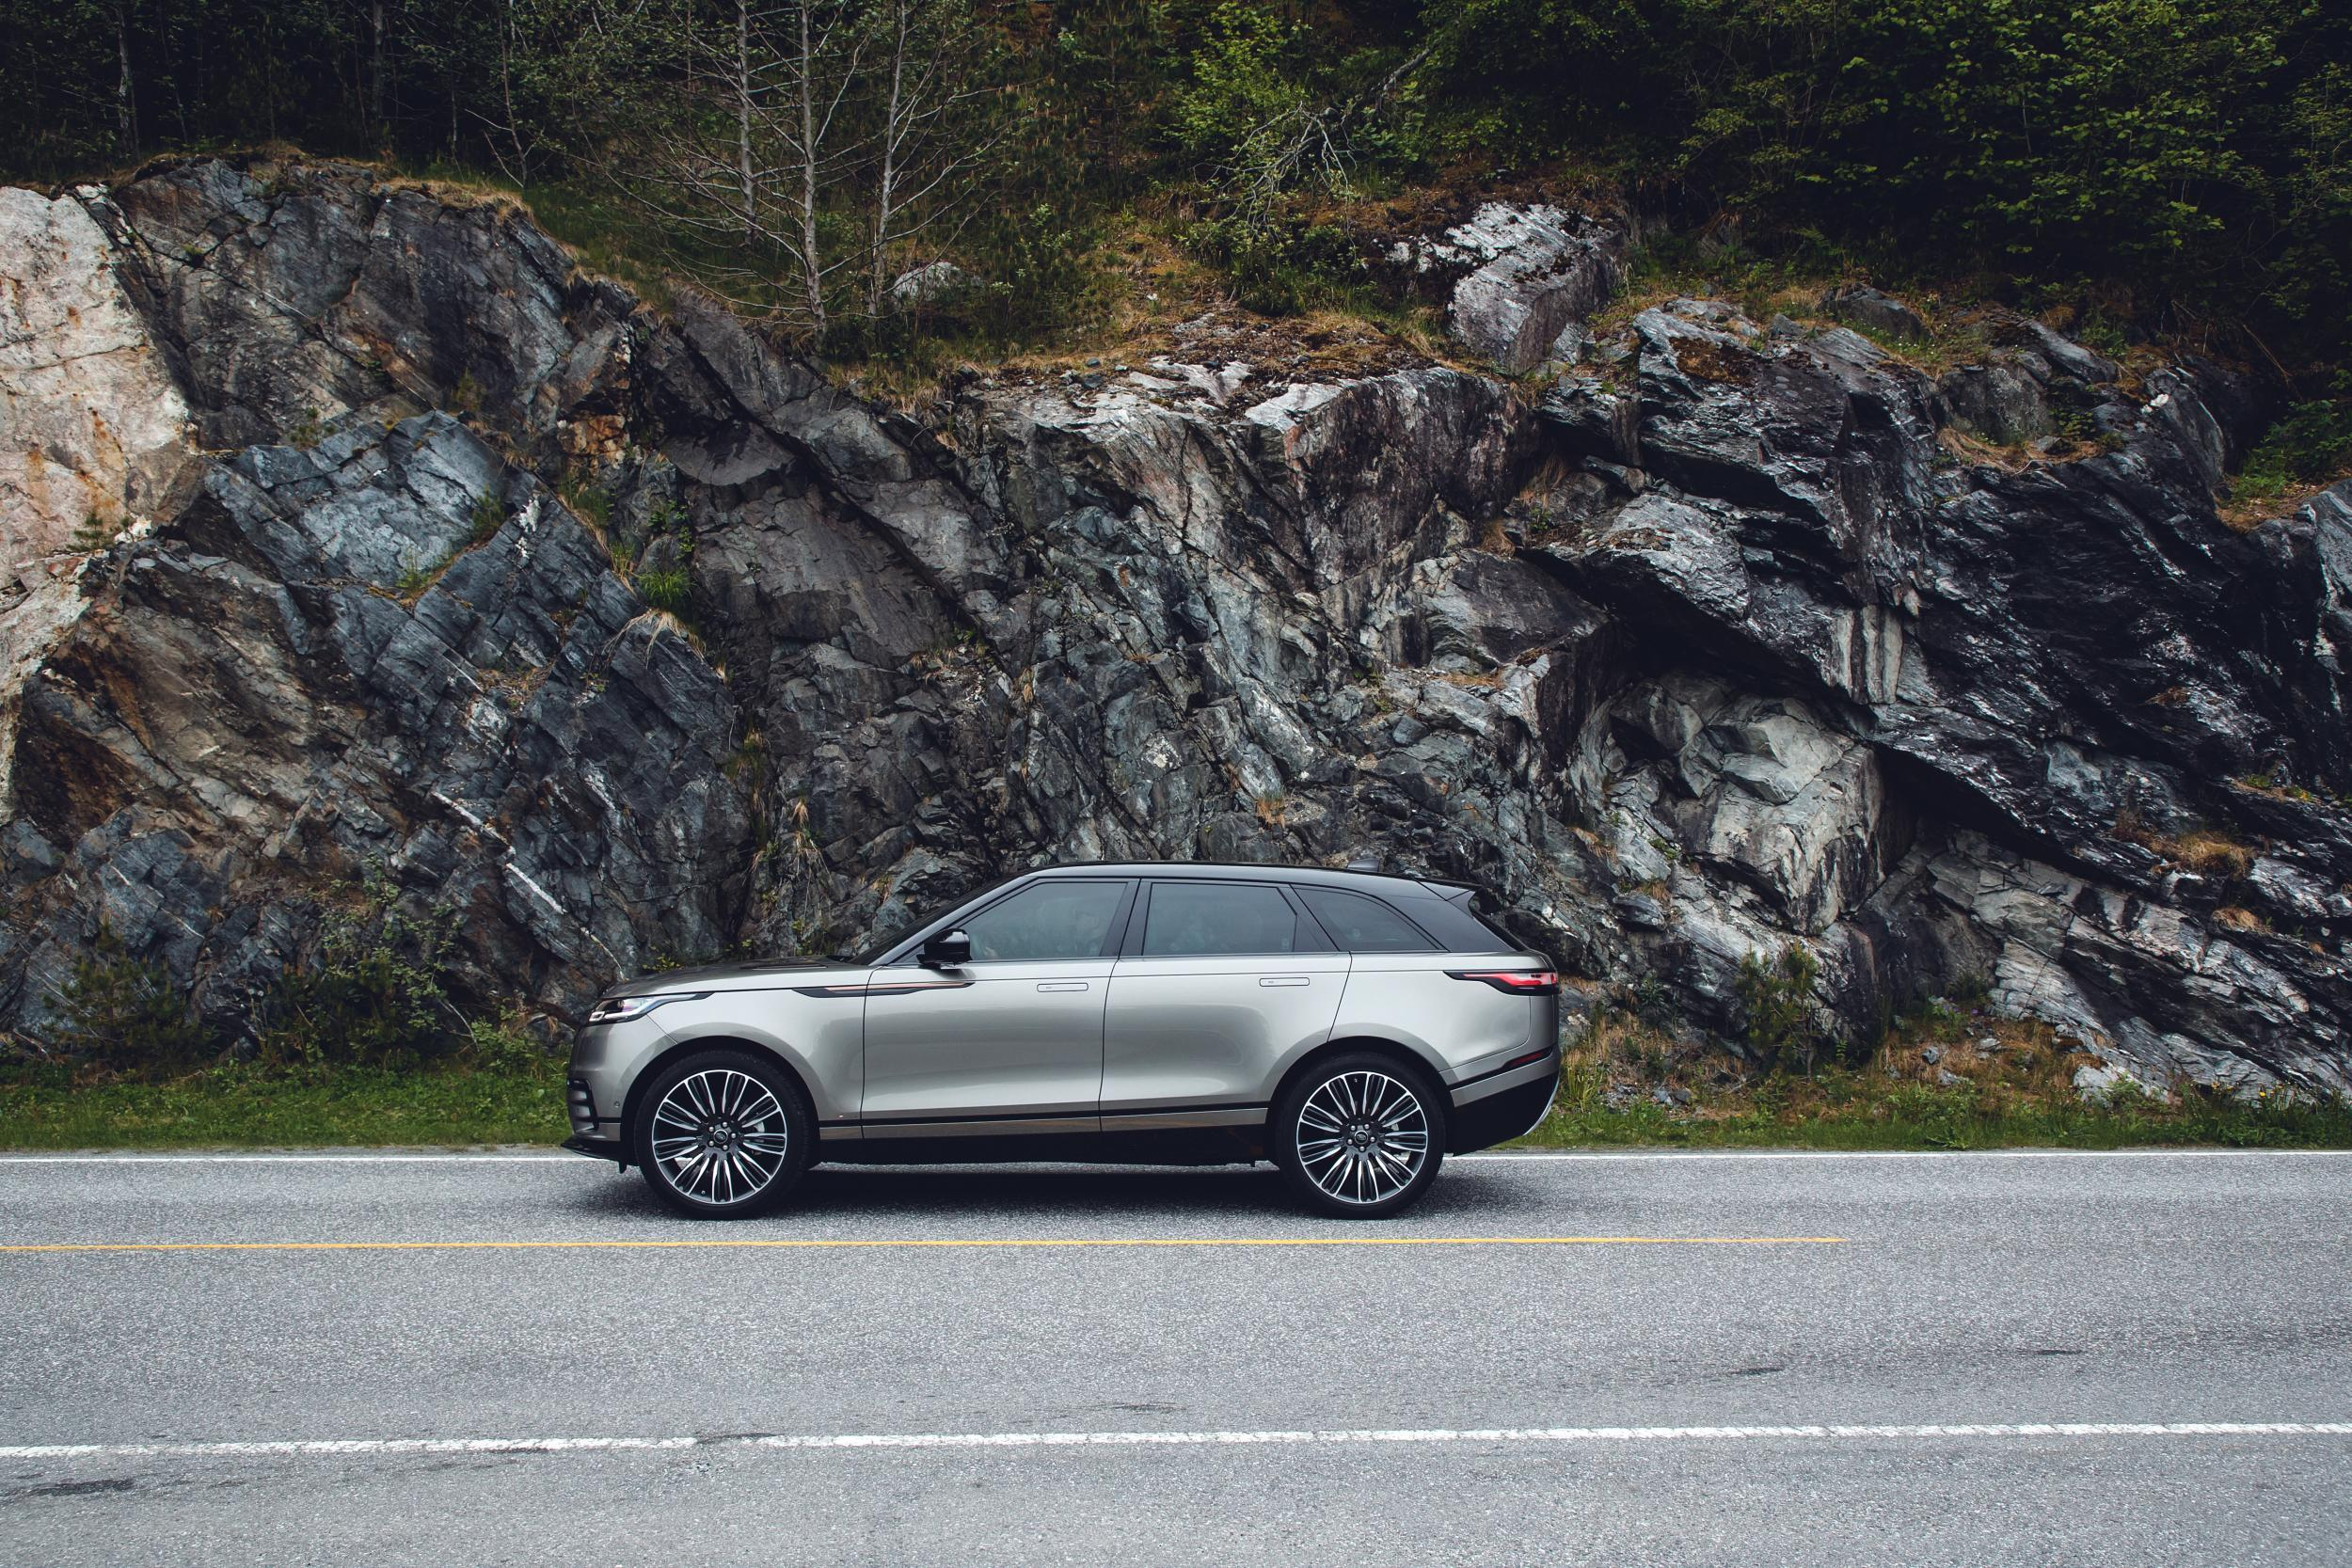 Car Review: Range Rover Velar | The Independent